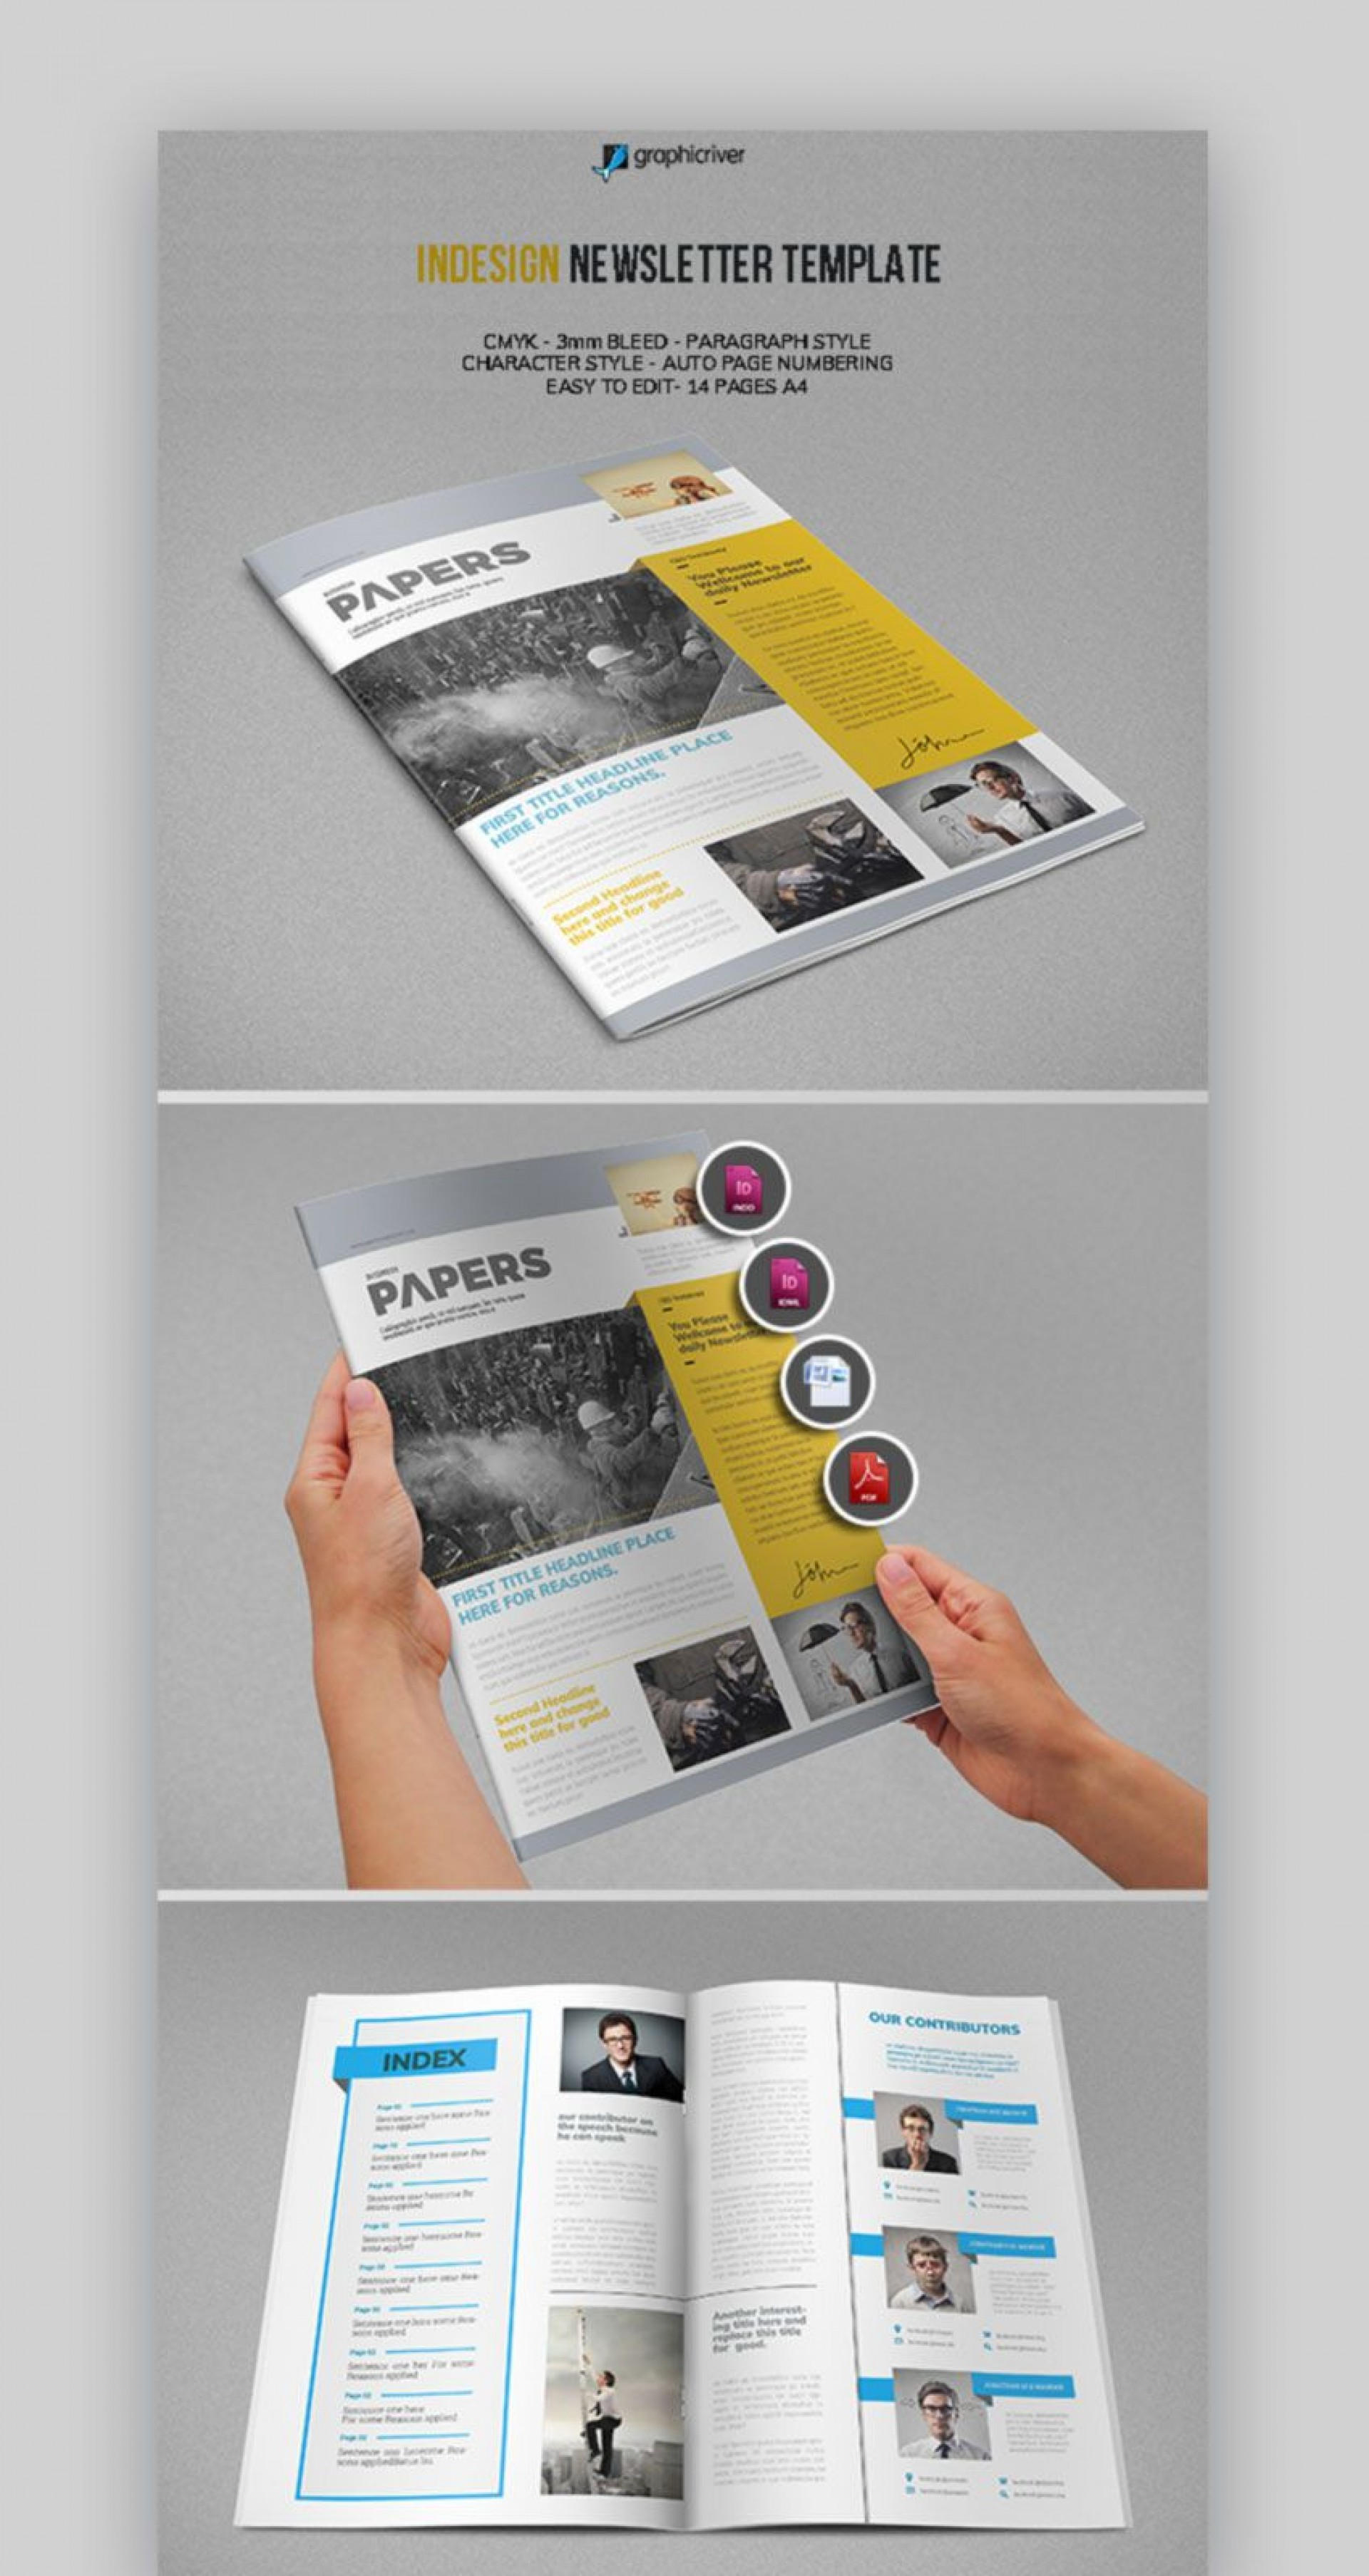 005 Fascinating Microsoft Word Newsletter Template Highest Quality  M 2007 Free Download For Teacher1920